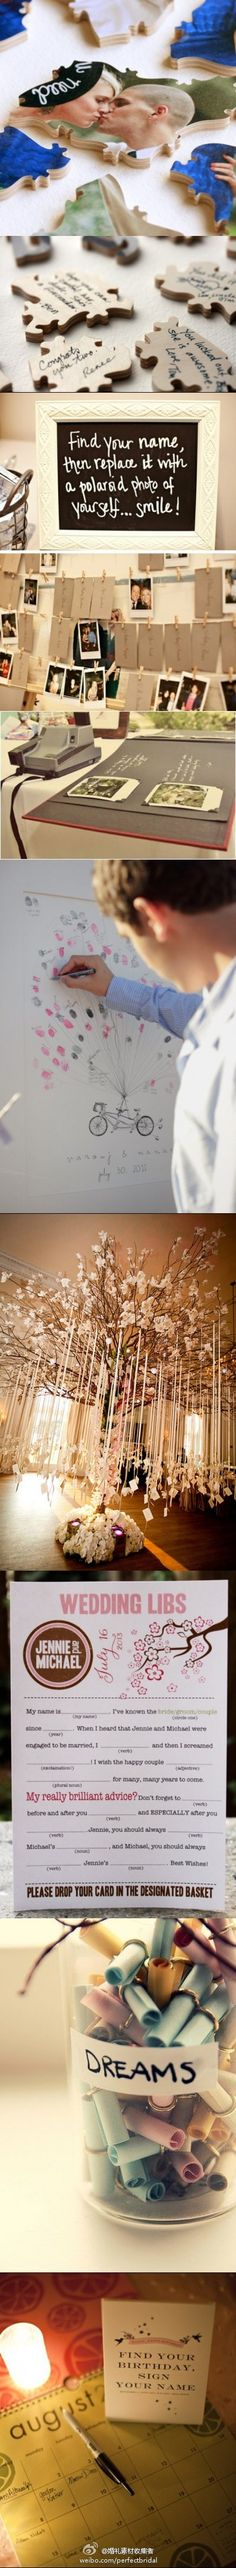 wedding sign-in ideas. pretty clever stuff.